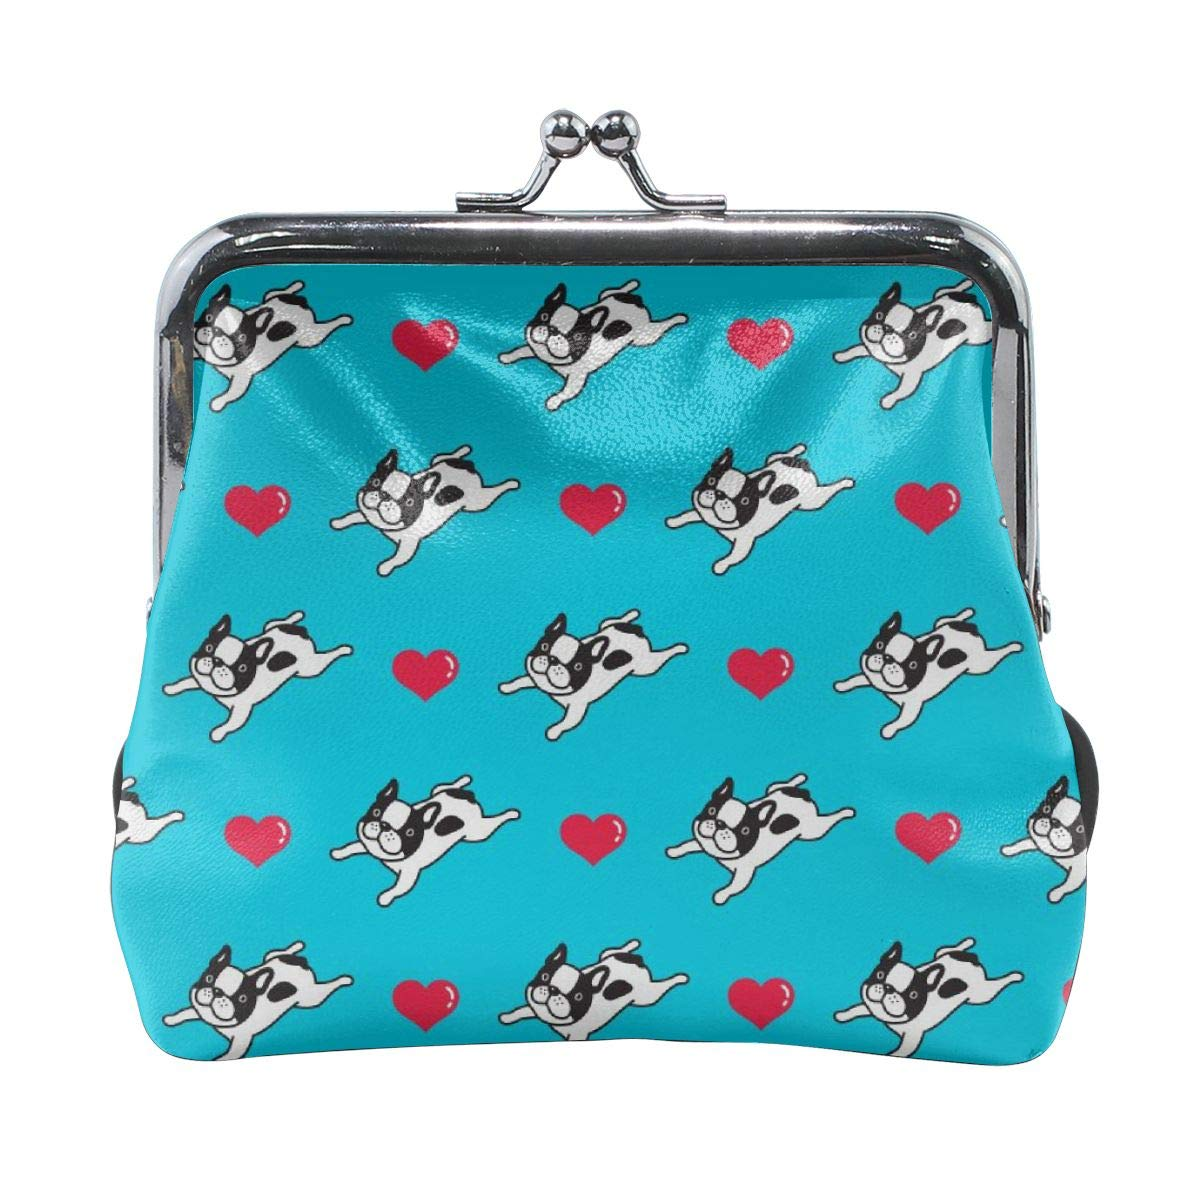 French Bulldog Heart Cute Buckle Coin Purses Buckle Buckle Change Purse Wallets